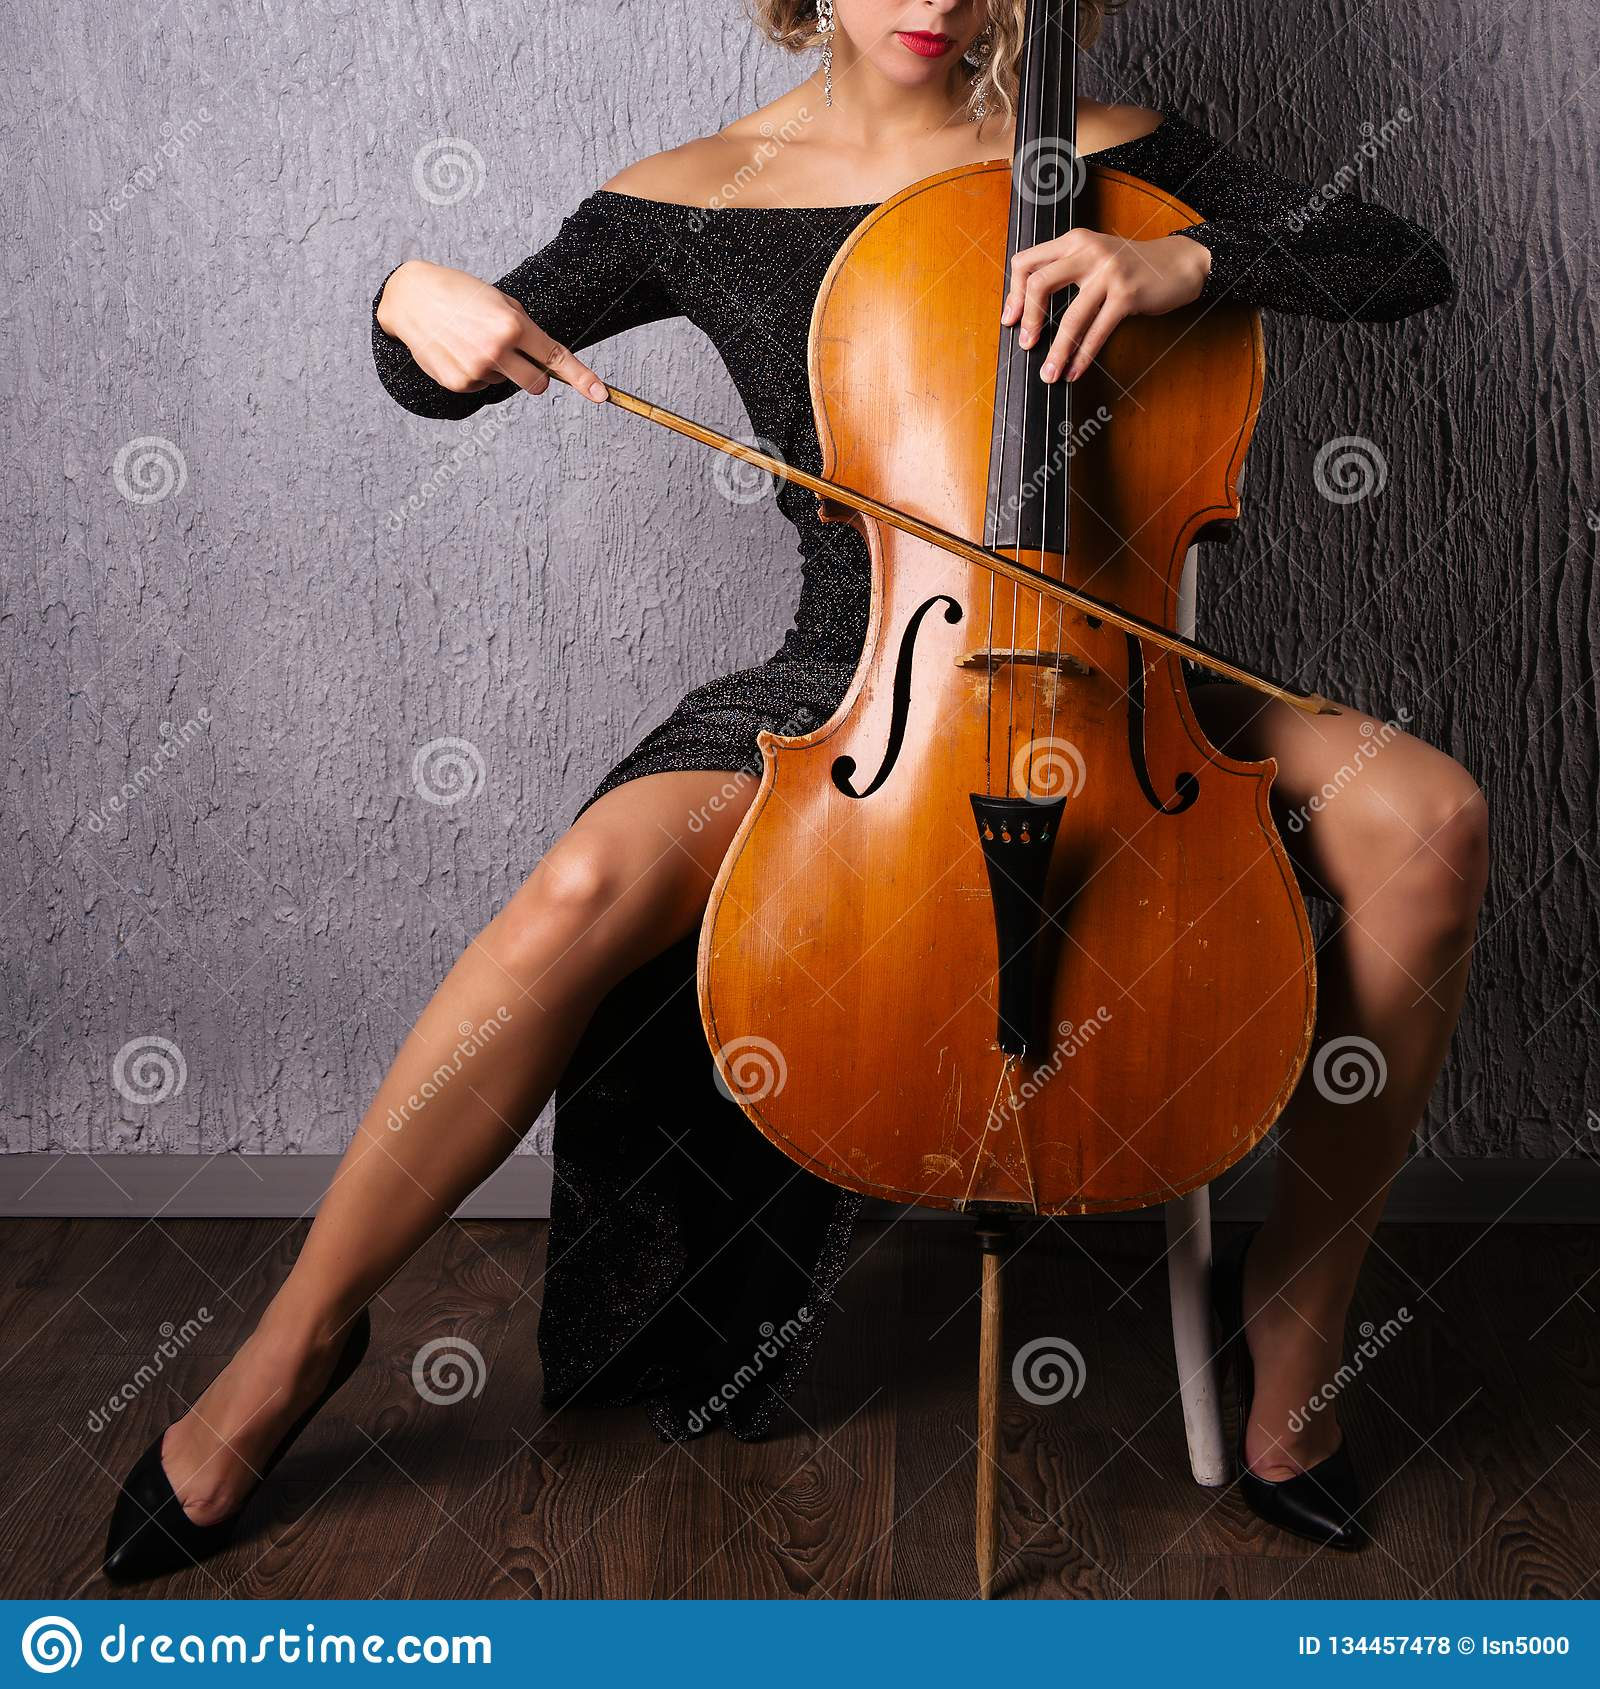 Asian woman in an evening dress playing the cello